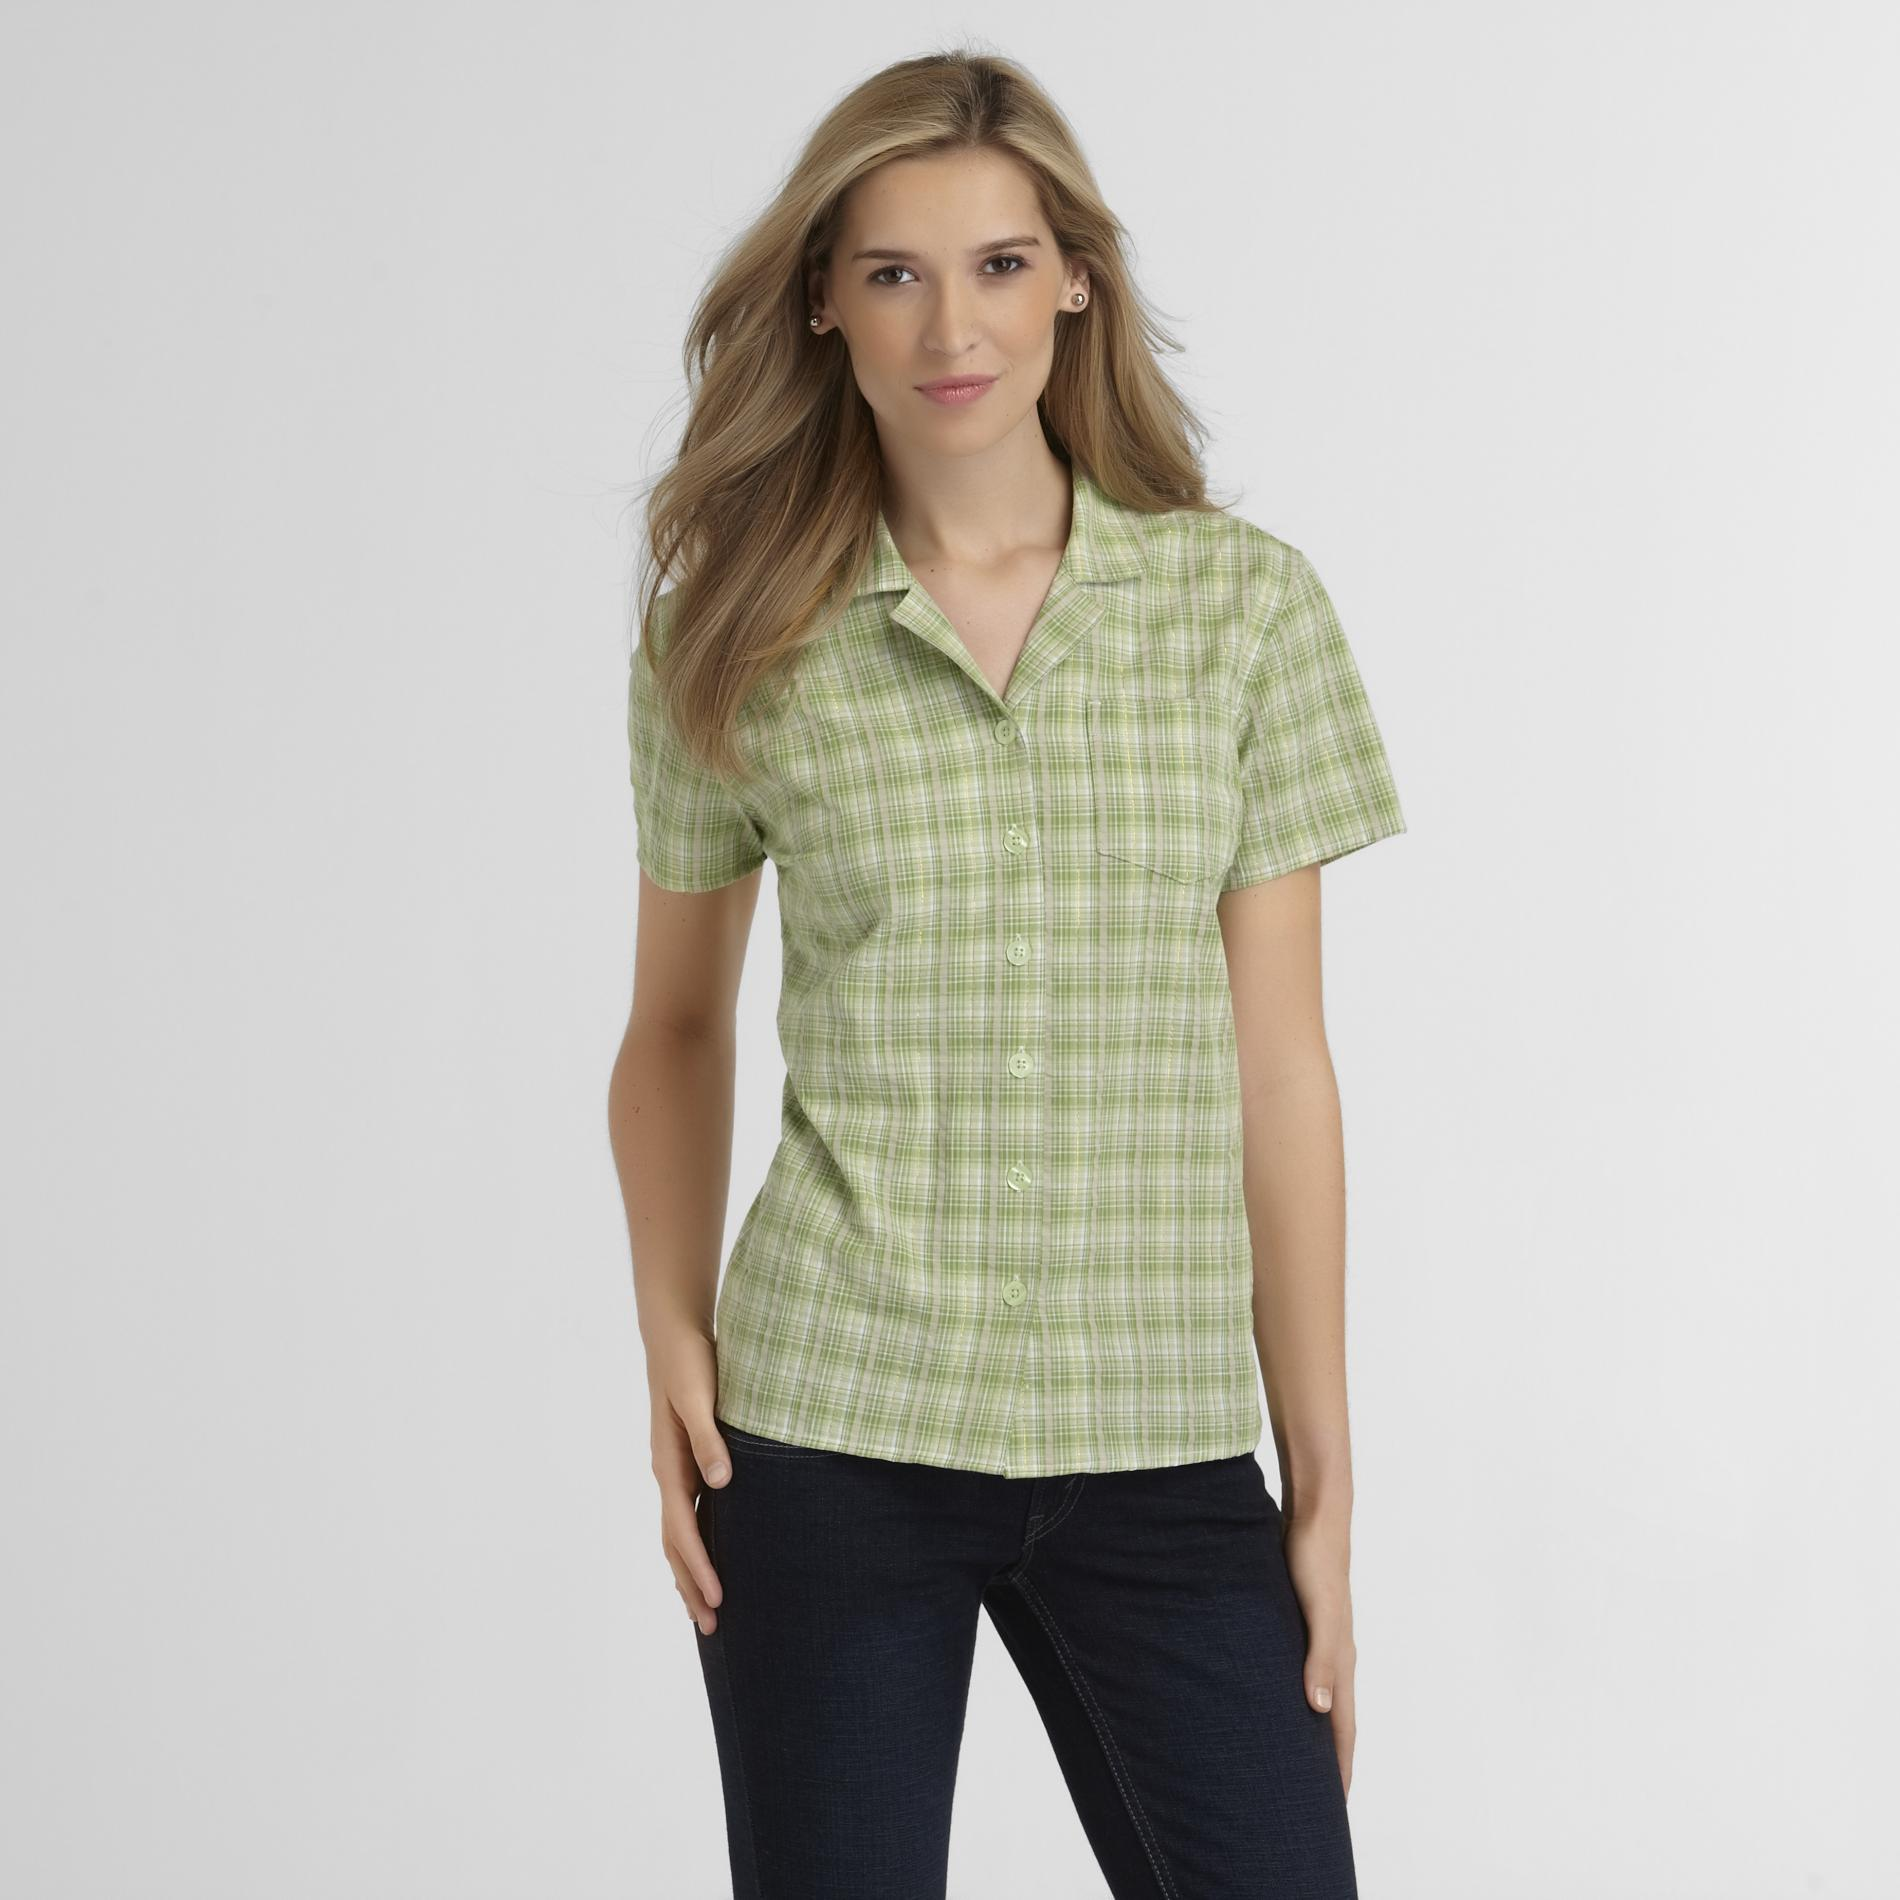 Basic Editions Womens Seersucker Shirt